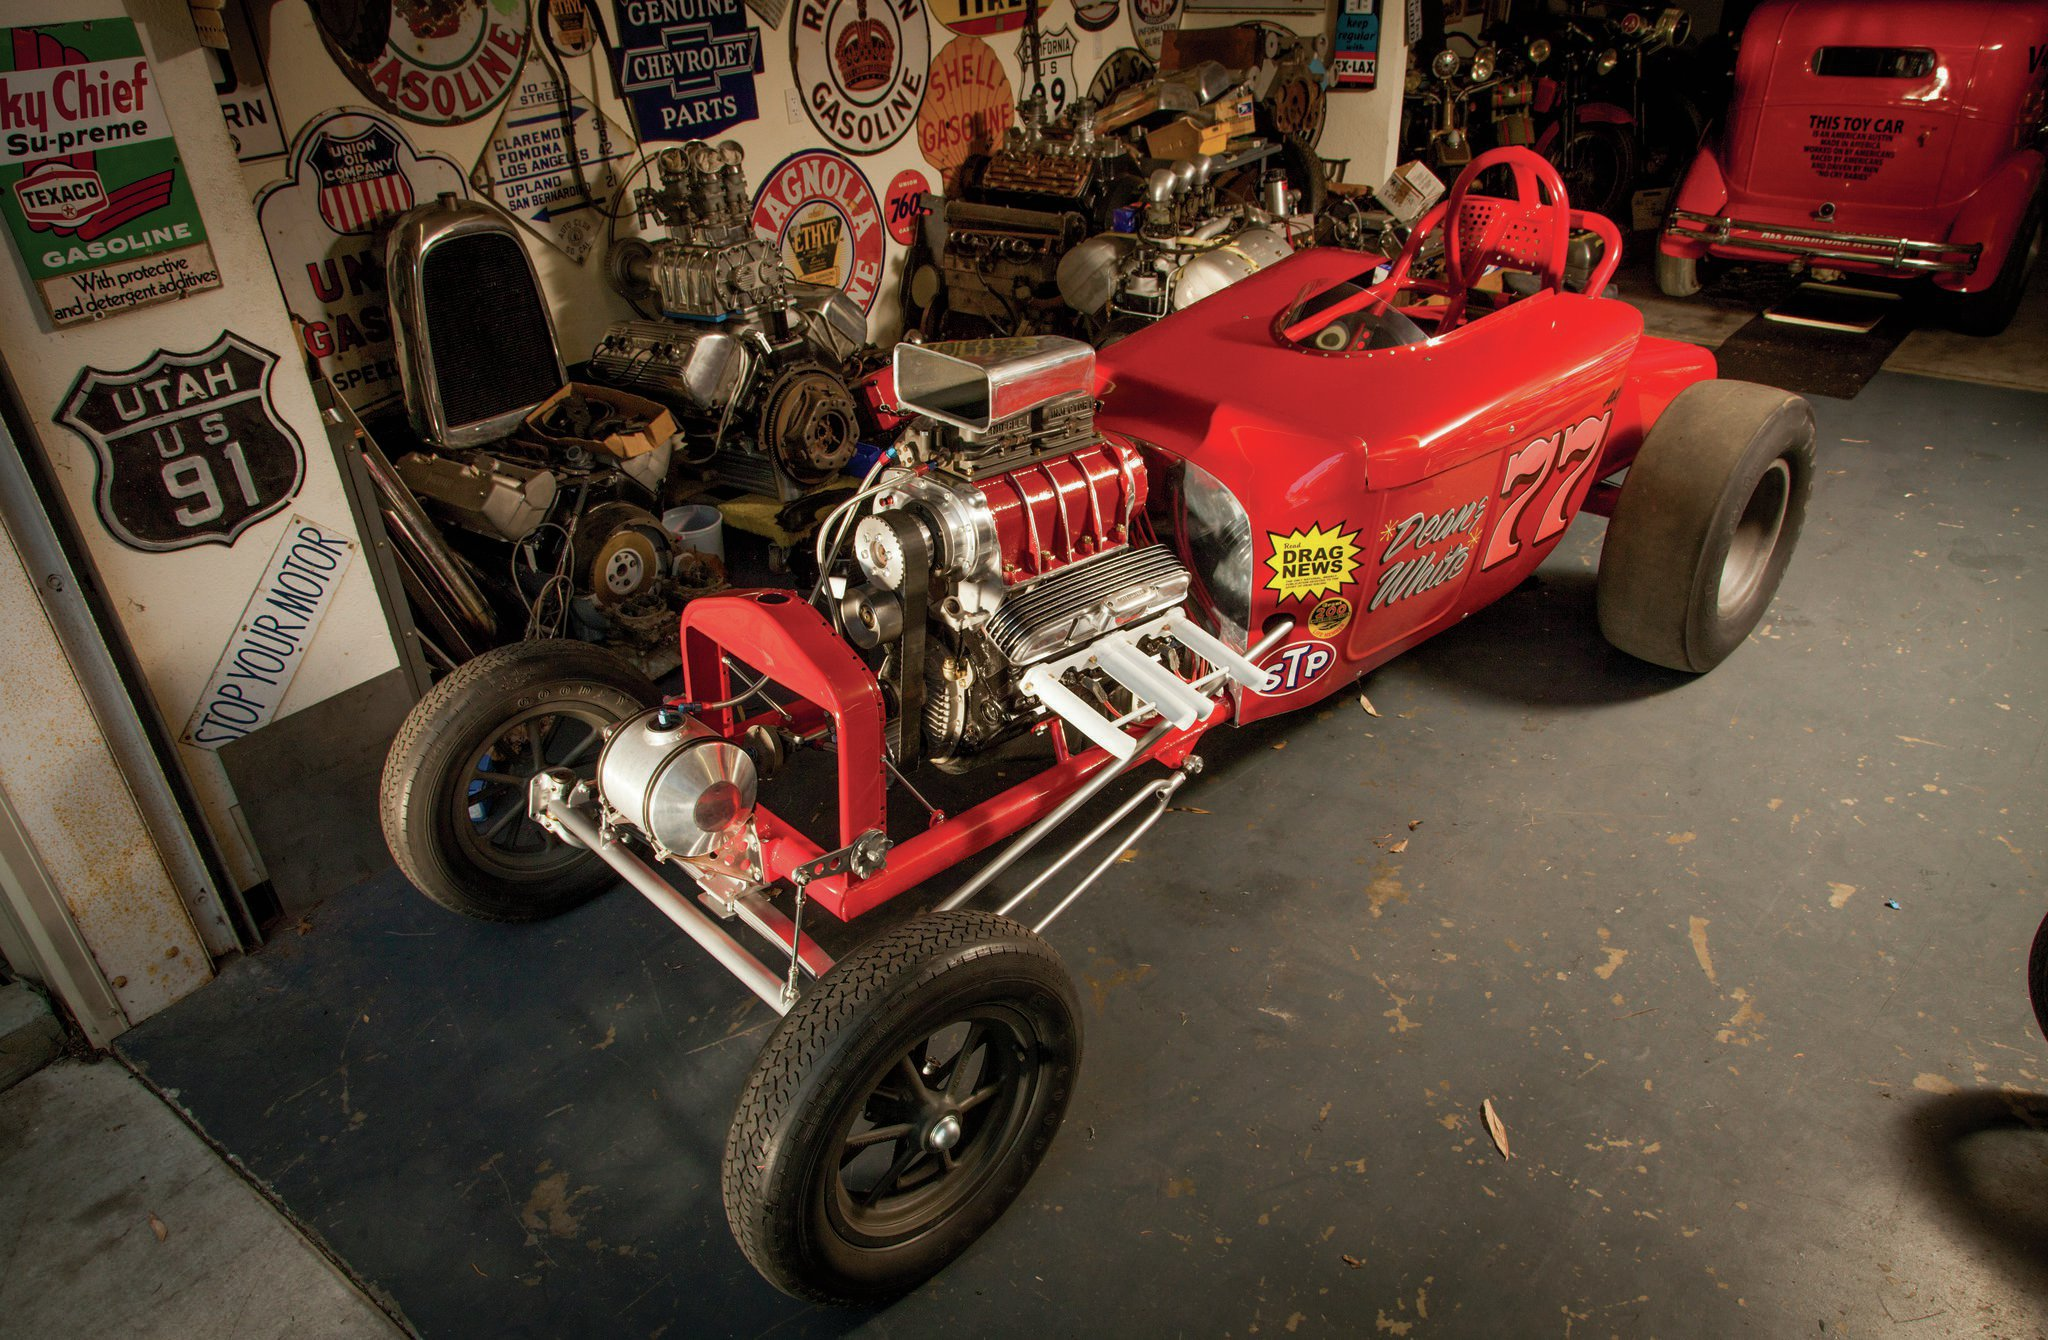 The completed tribute now joins Jim Lattin's incredible collection of vintage hot rods and race cars.